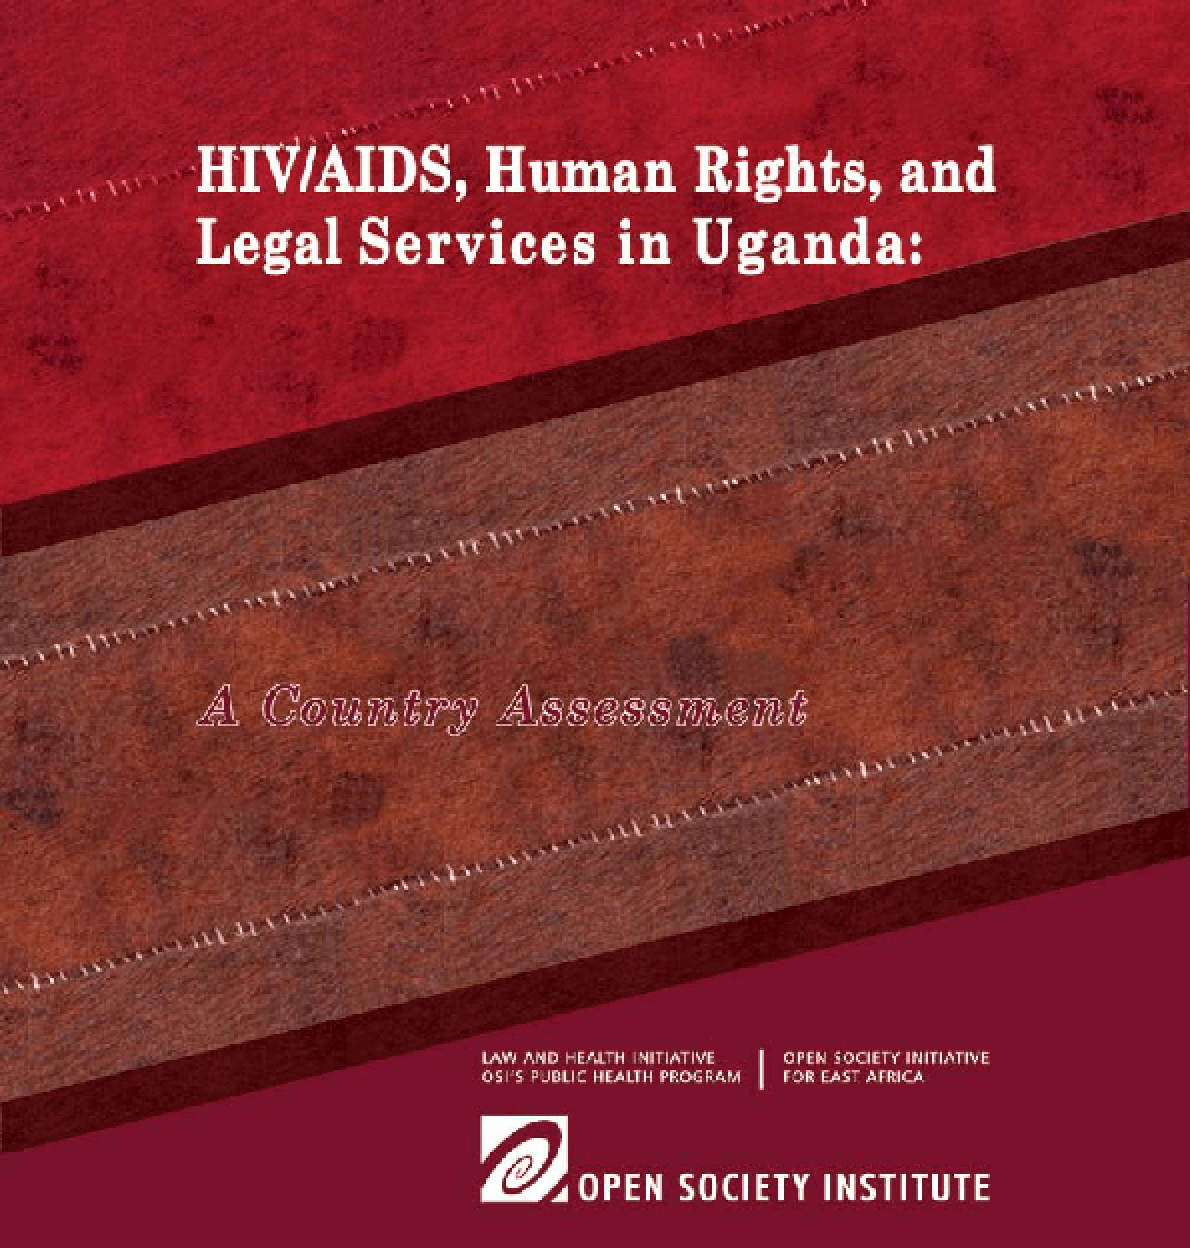 HIV/AIDS, Human Rights, and Legal Services in Uganda